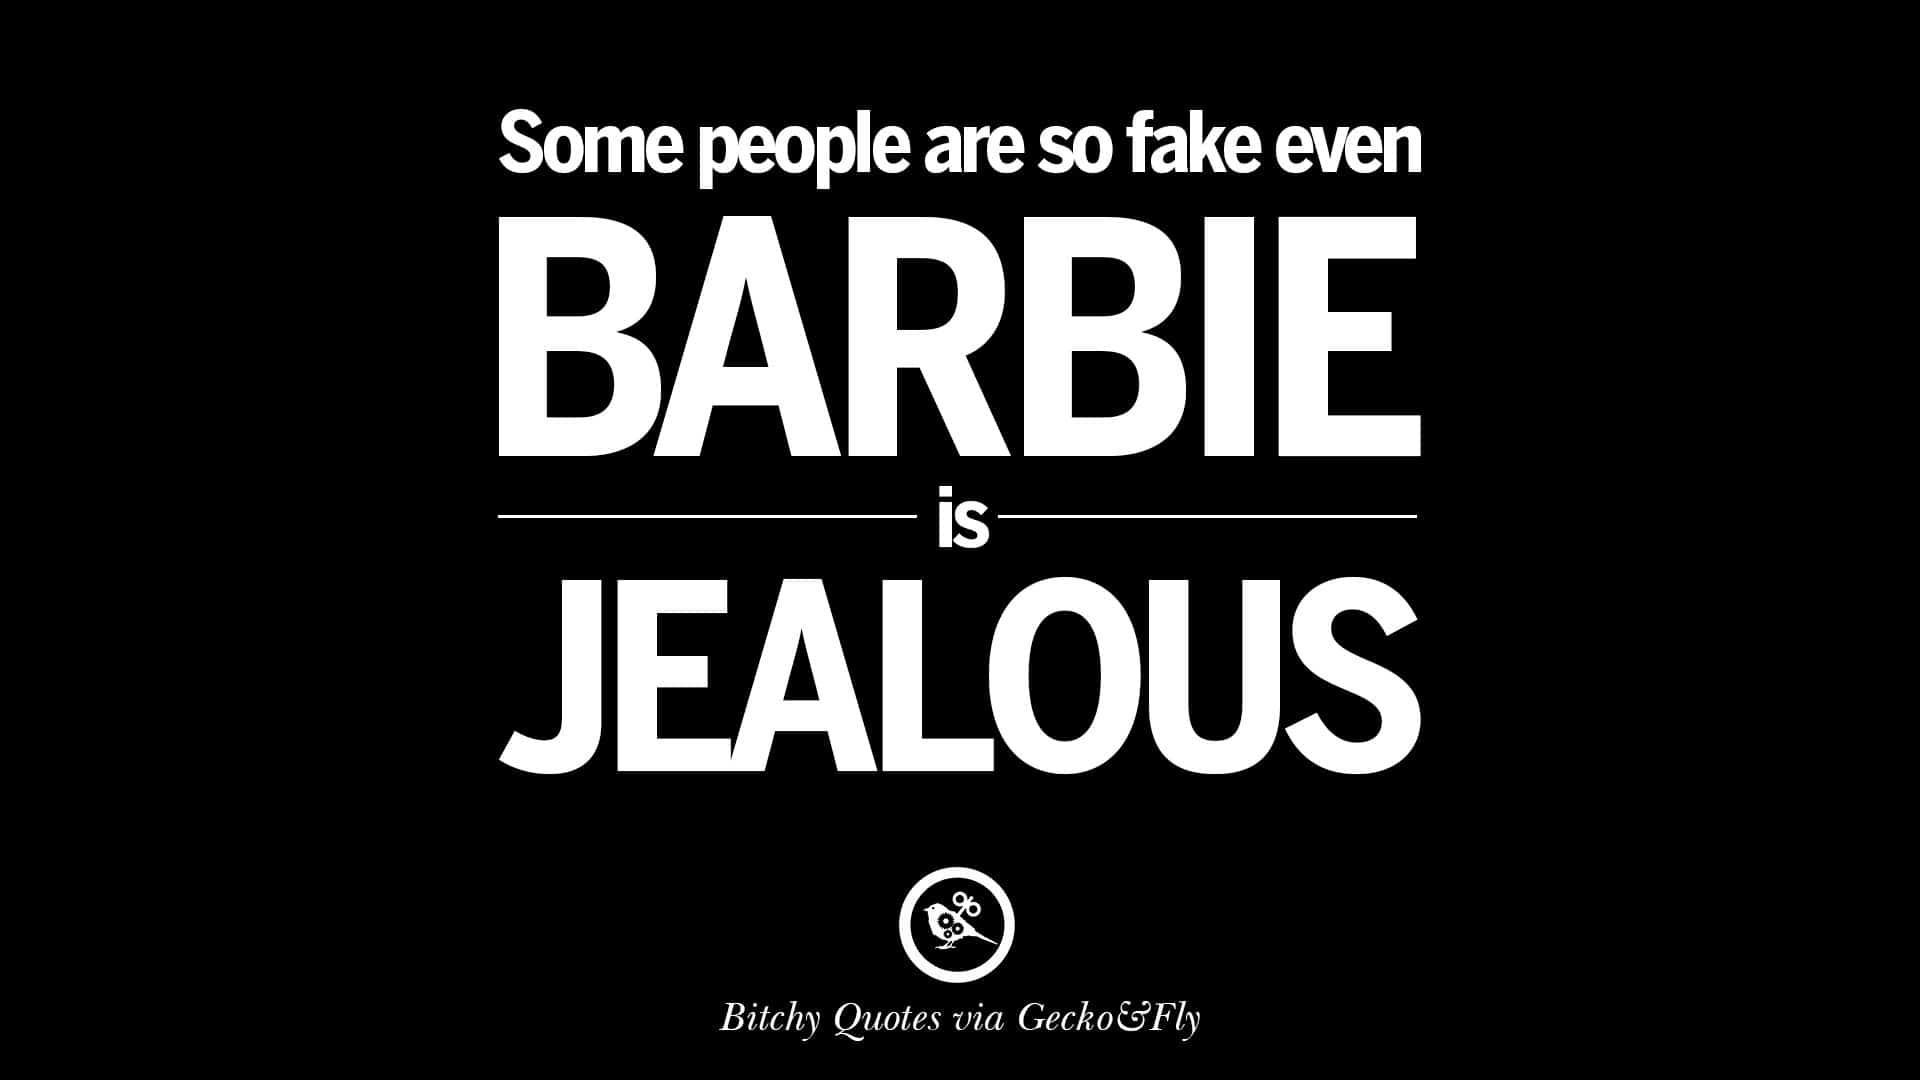 Barbie is jealous Fake people Meme